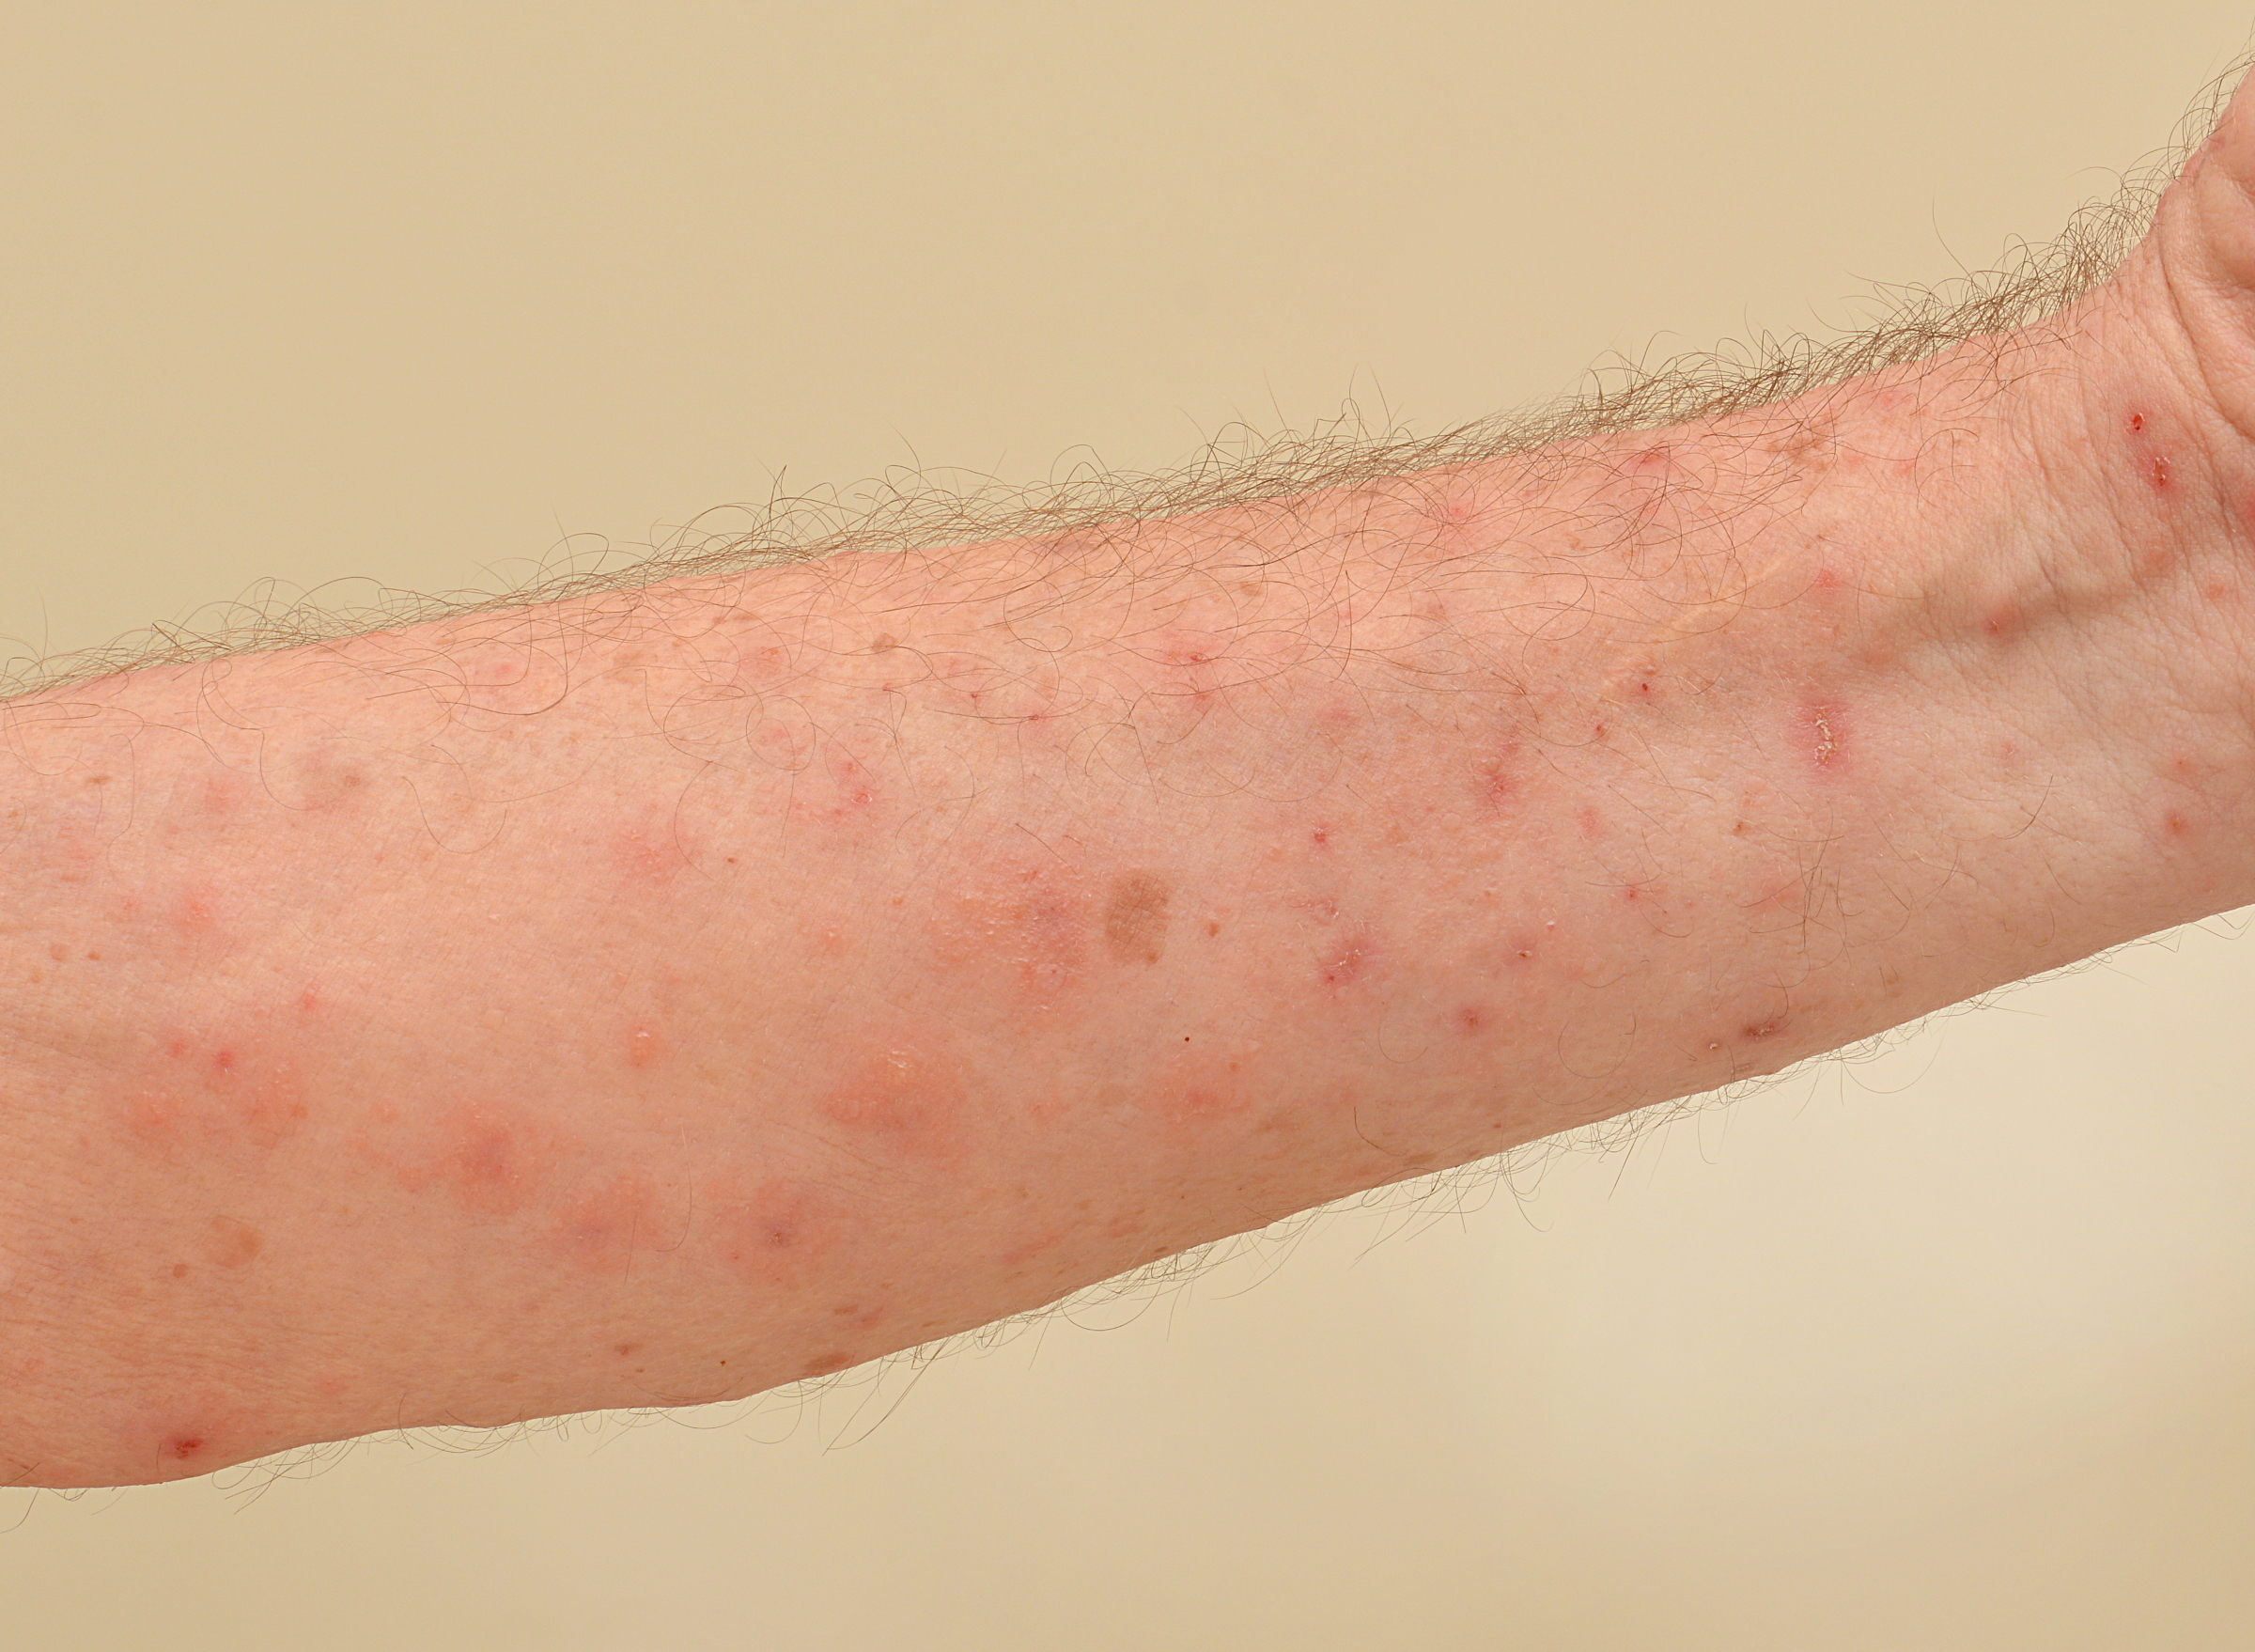 Scabies (Credit: Chuck Wagner/Shutterstock)